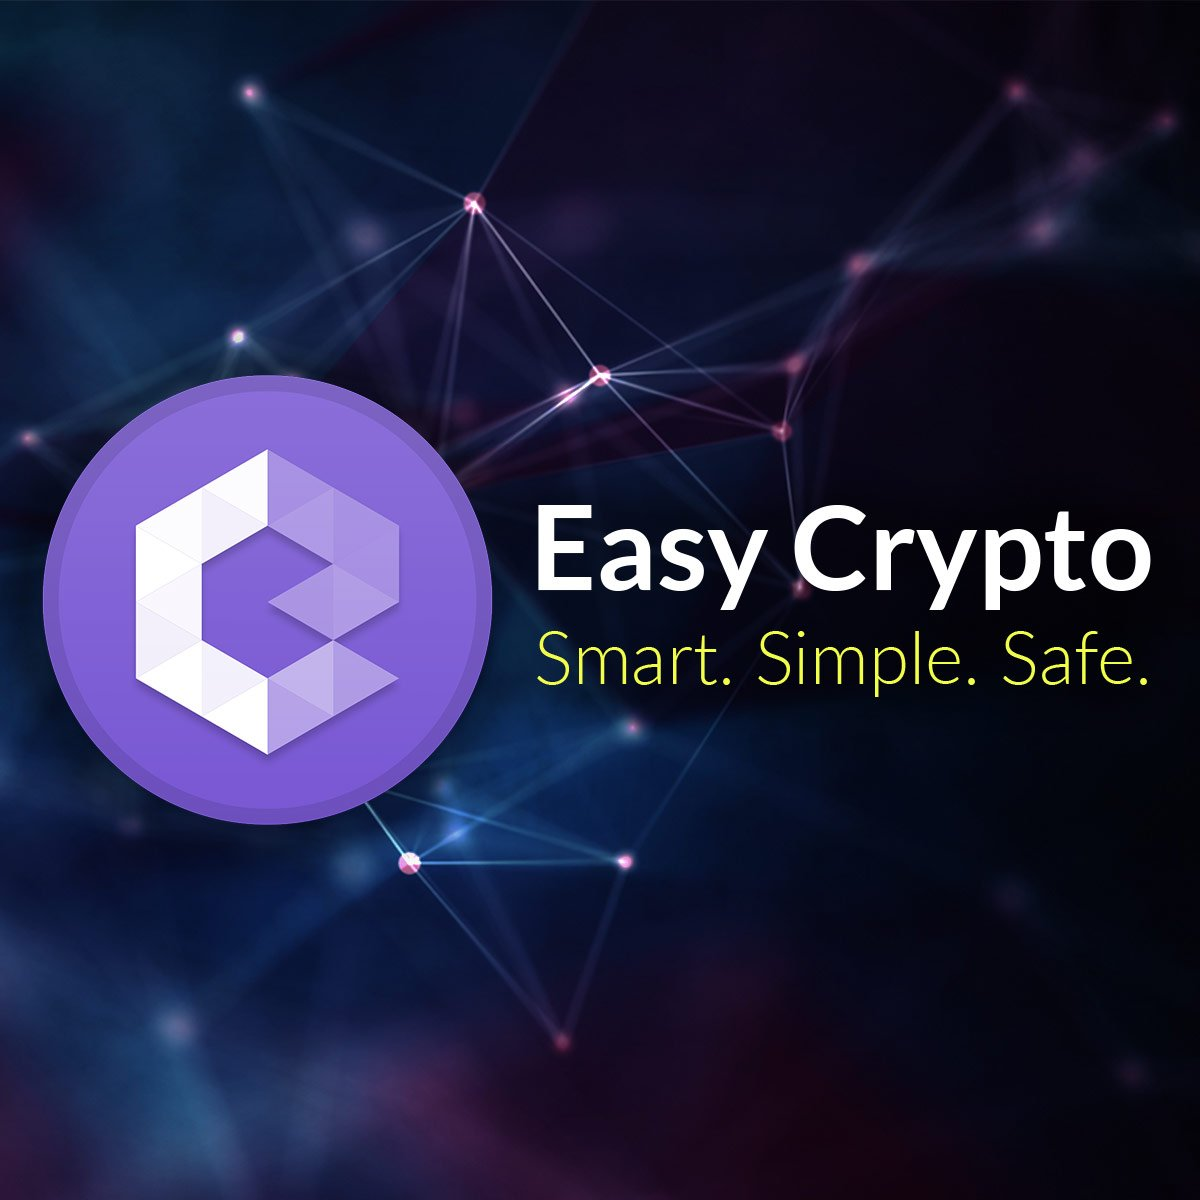 Easy Crypto logo banner with blockchain back ground